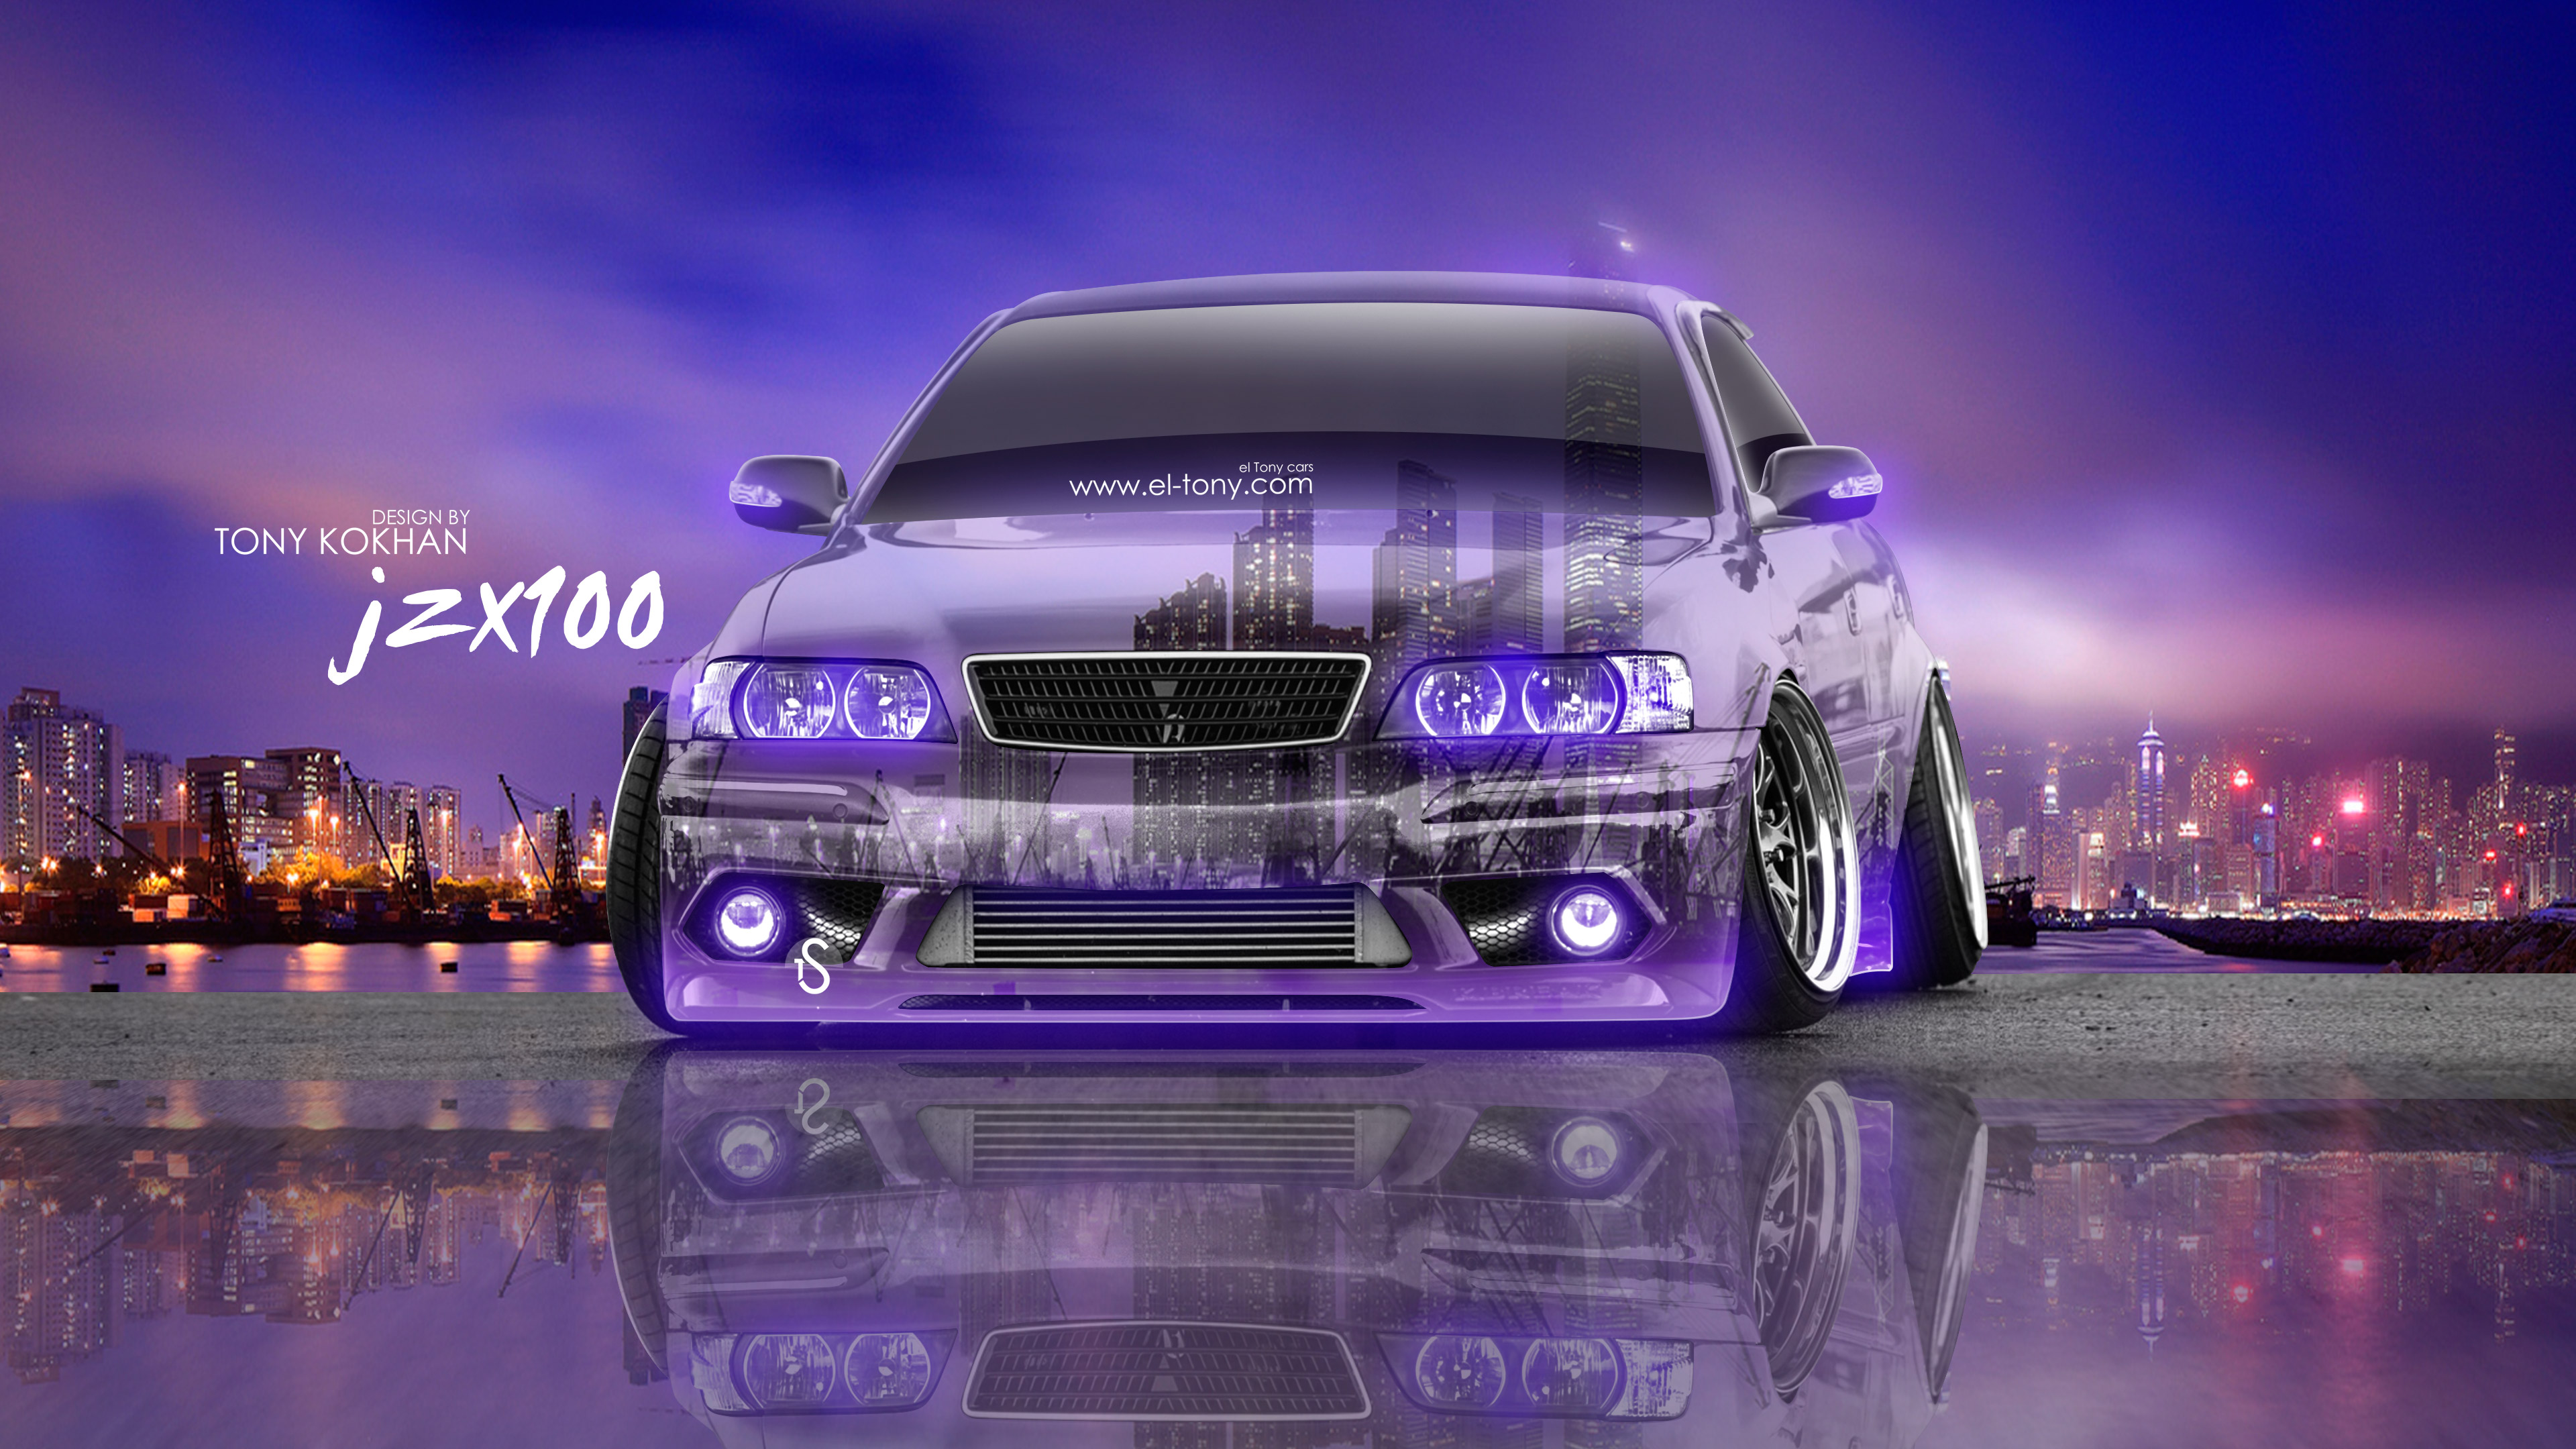 Wonderful Toyota Chaser JZX100 JDM Tuning 3D Crystal City